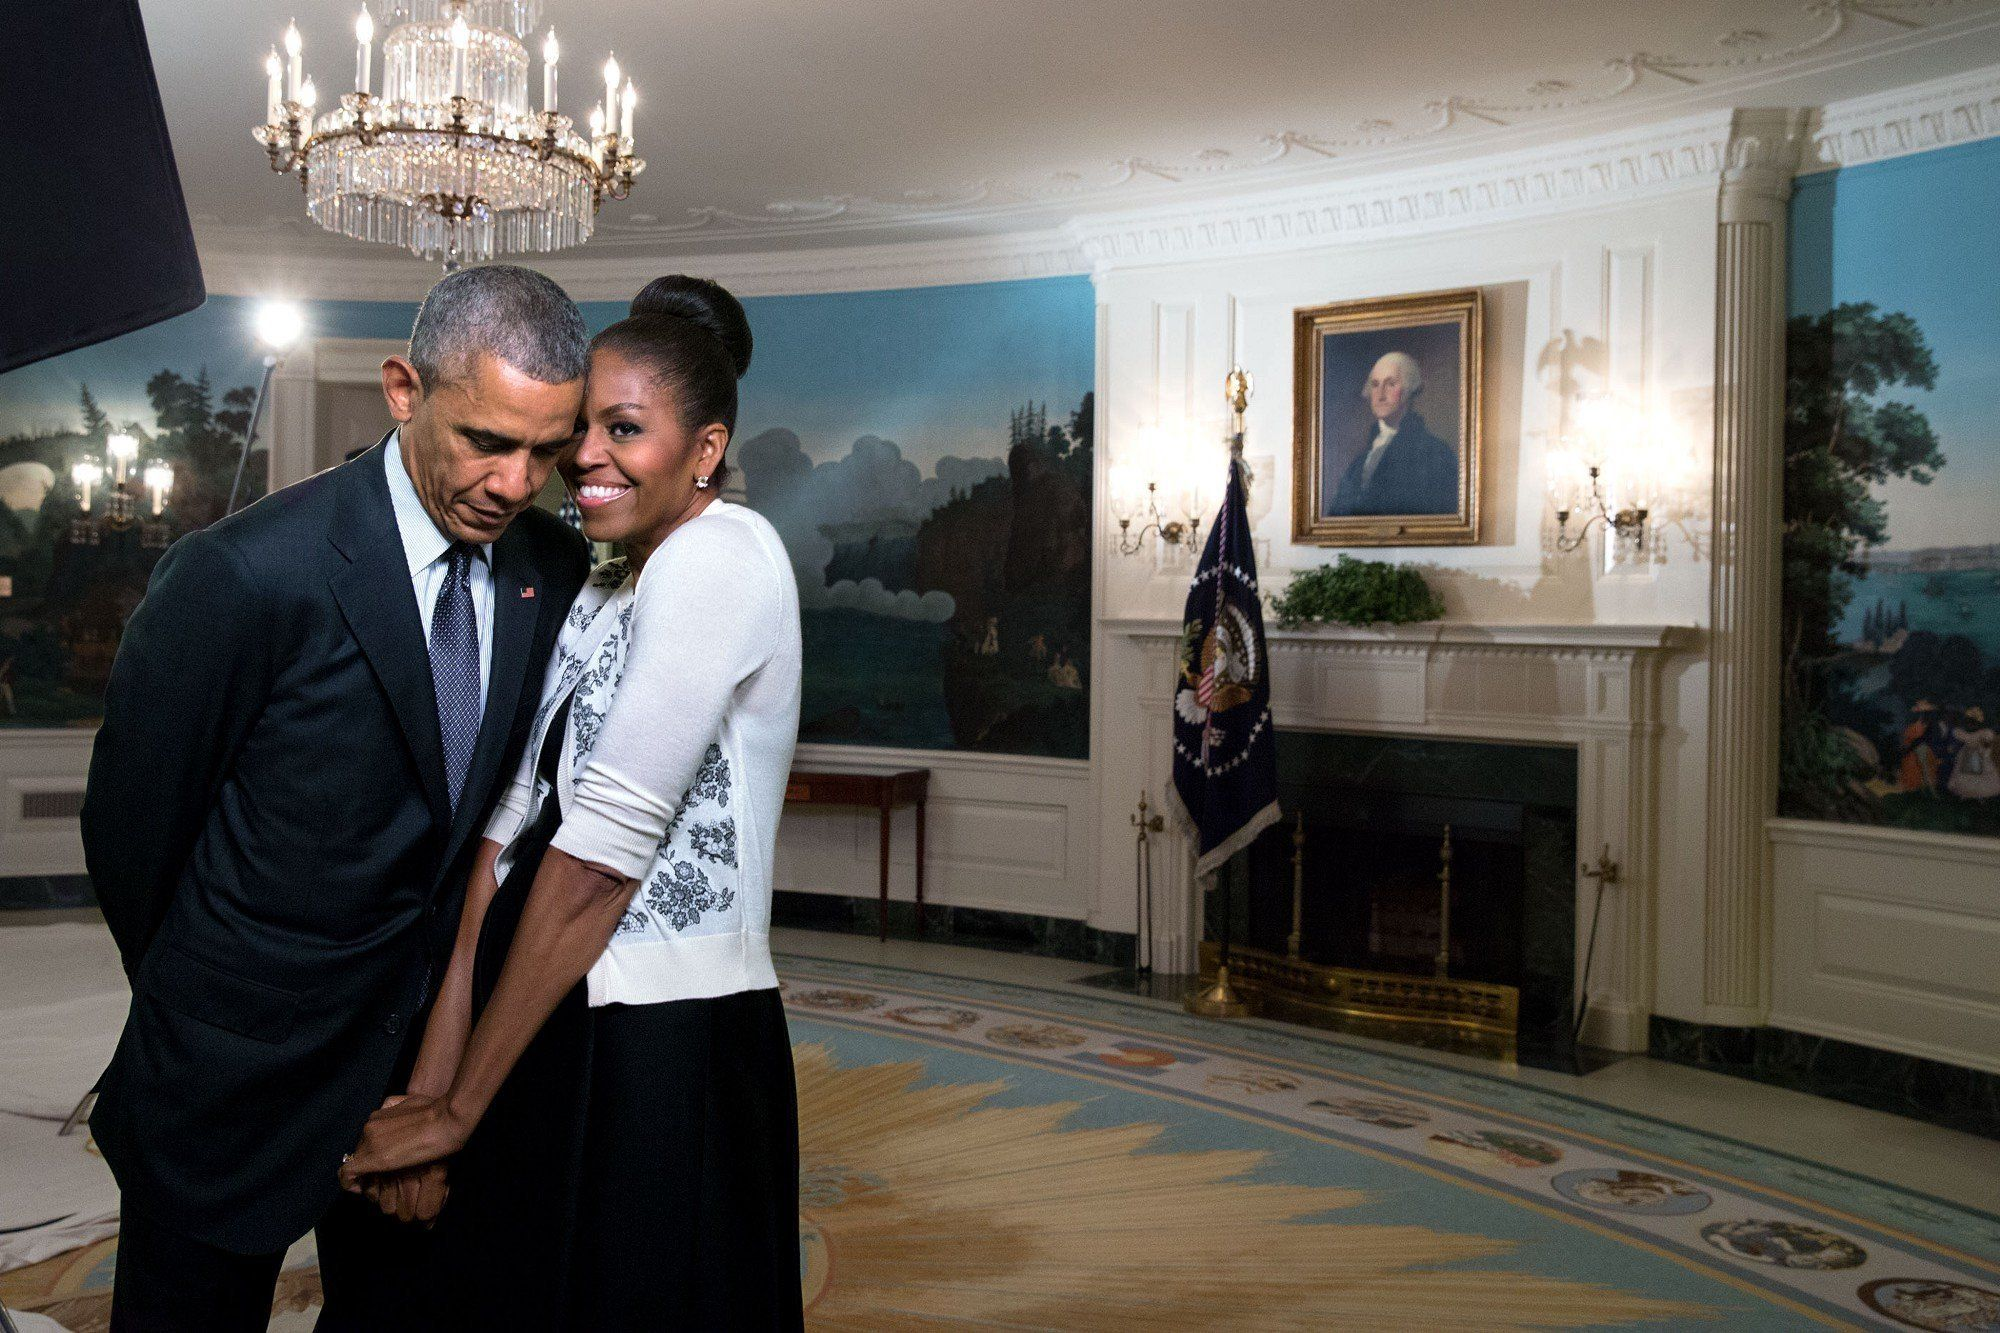 The first ladysnuggles against the president during a videotaping for the 2015 World Expo in the Diplomatic Reception R